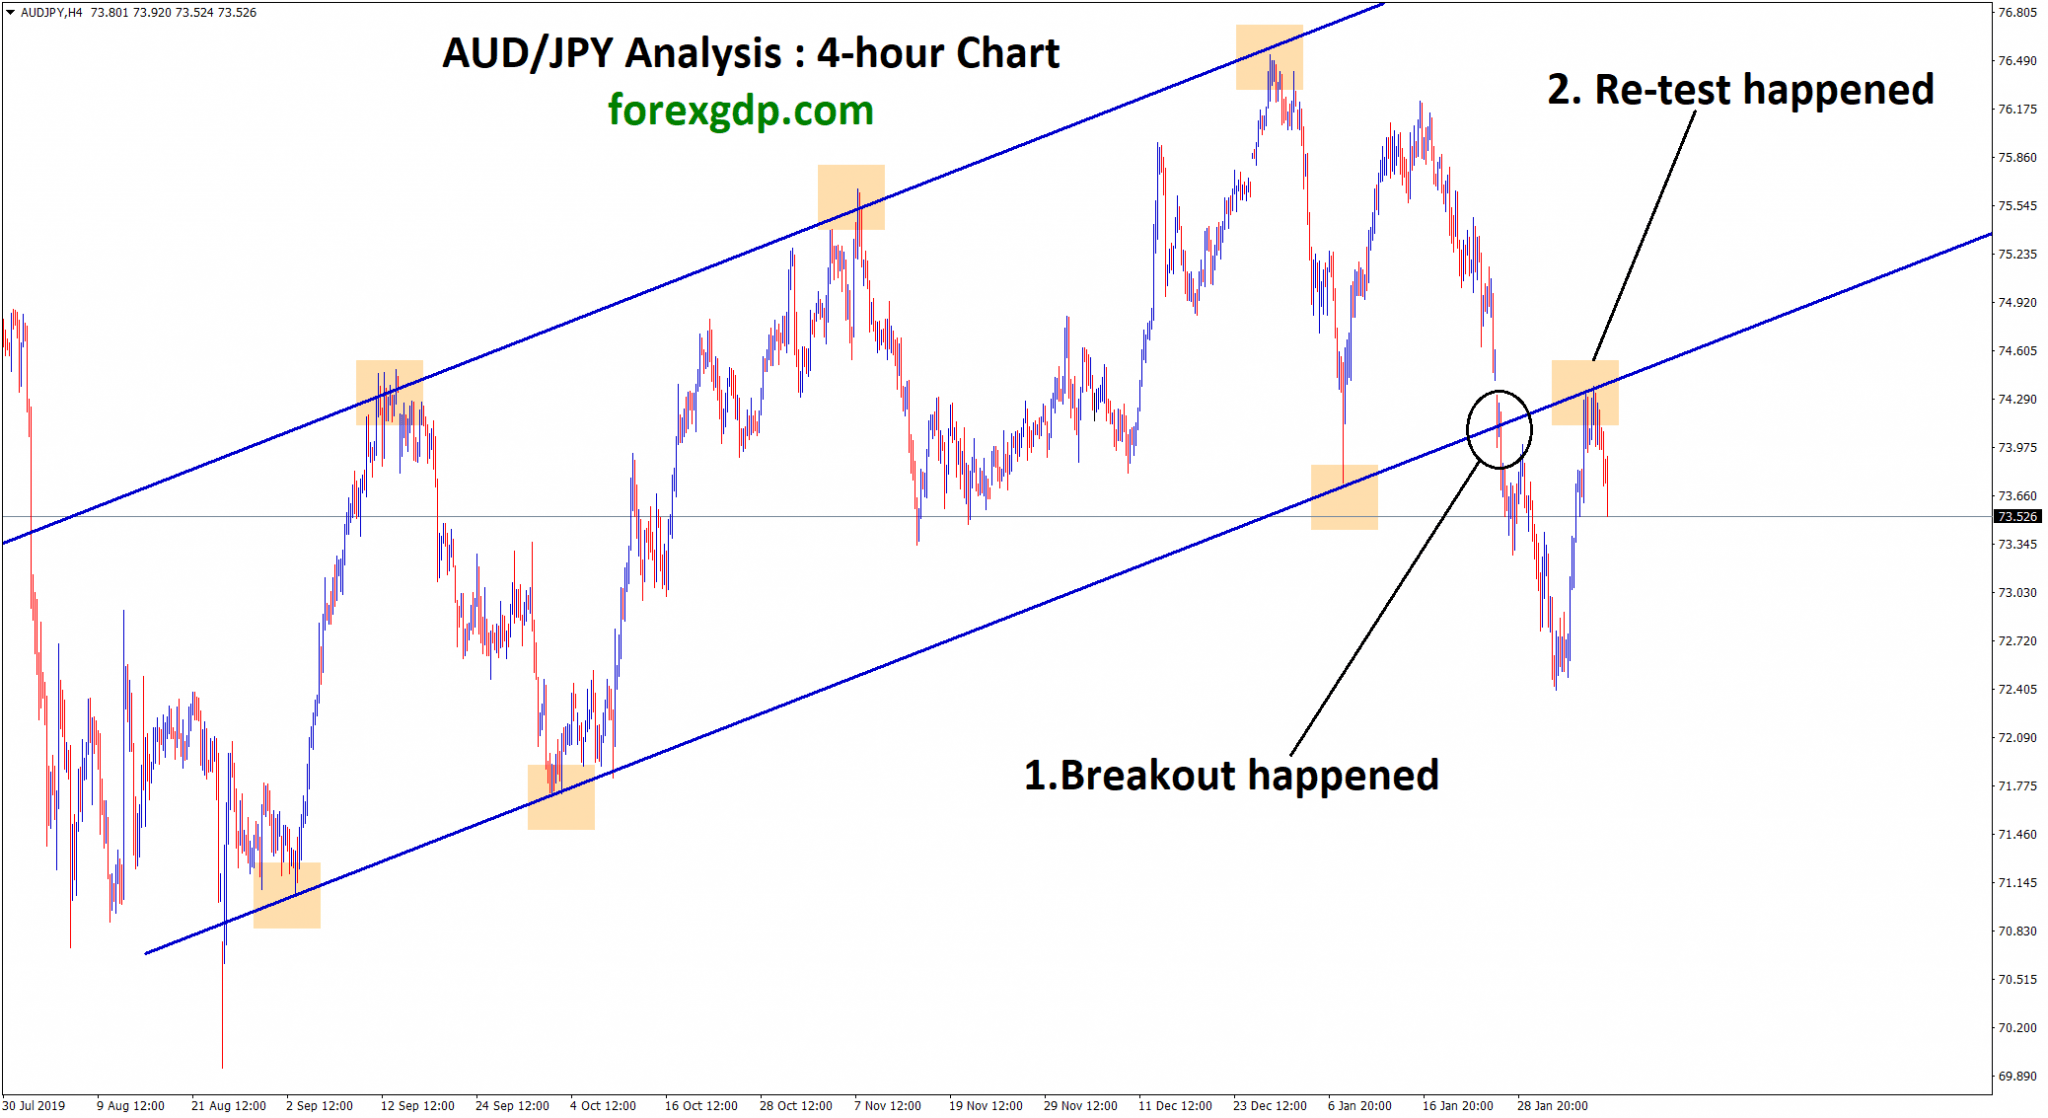 AUD JPY breakout happened at the bottom